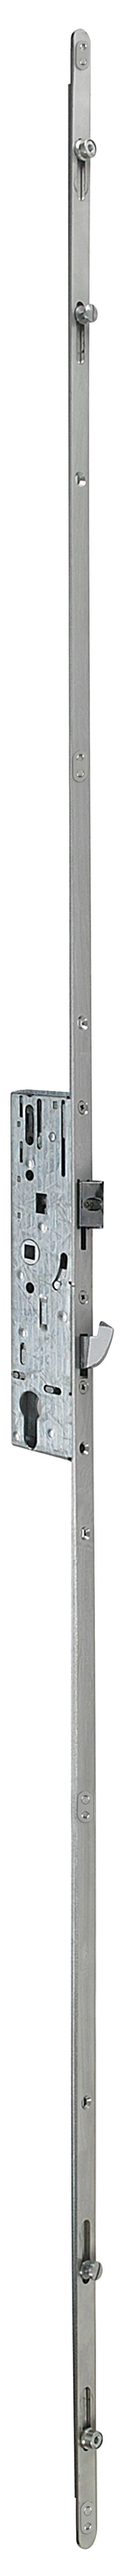 Universal Replacement Lock for PVCu Doors